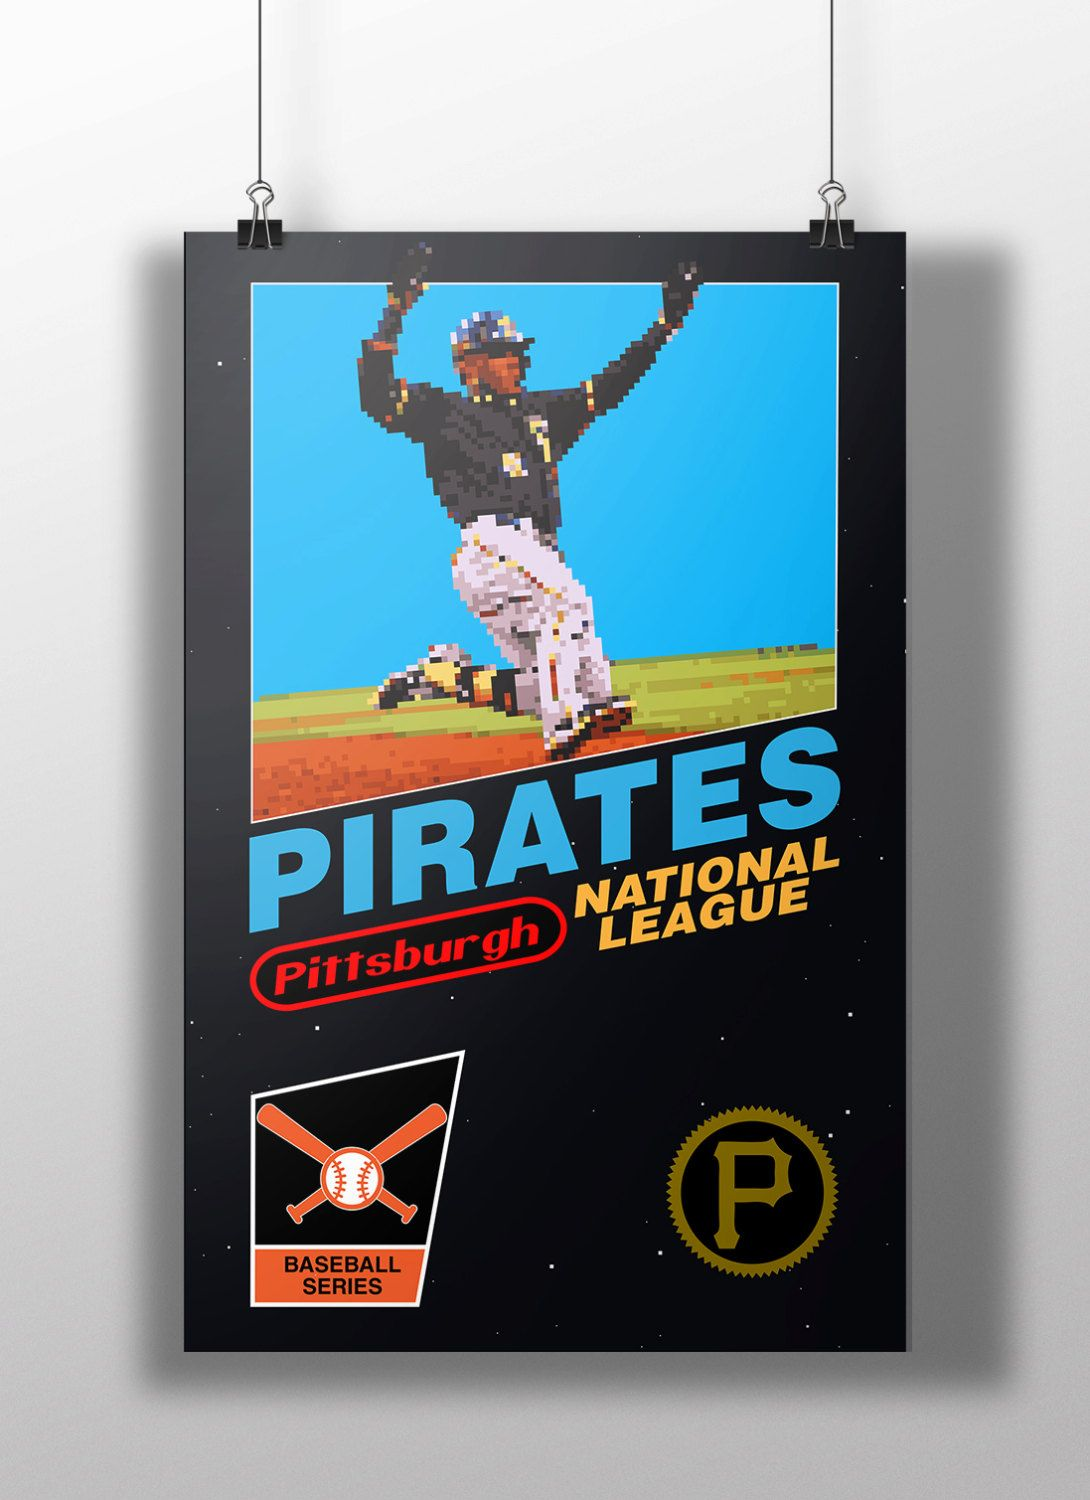 Starling marte photos photos cincinnati reds v pittsburgh pirates - Pittsburgh Pirates Retro Nes Box Art Print Starling Marte By Bigleagueprints On Etsy